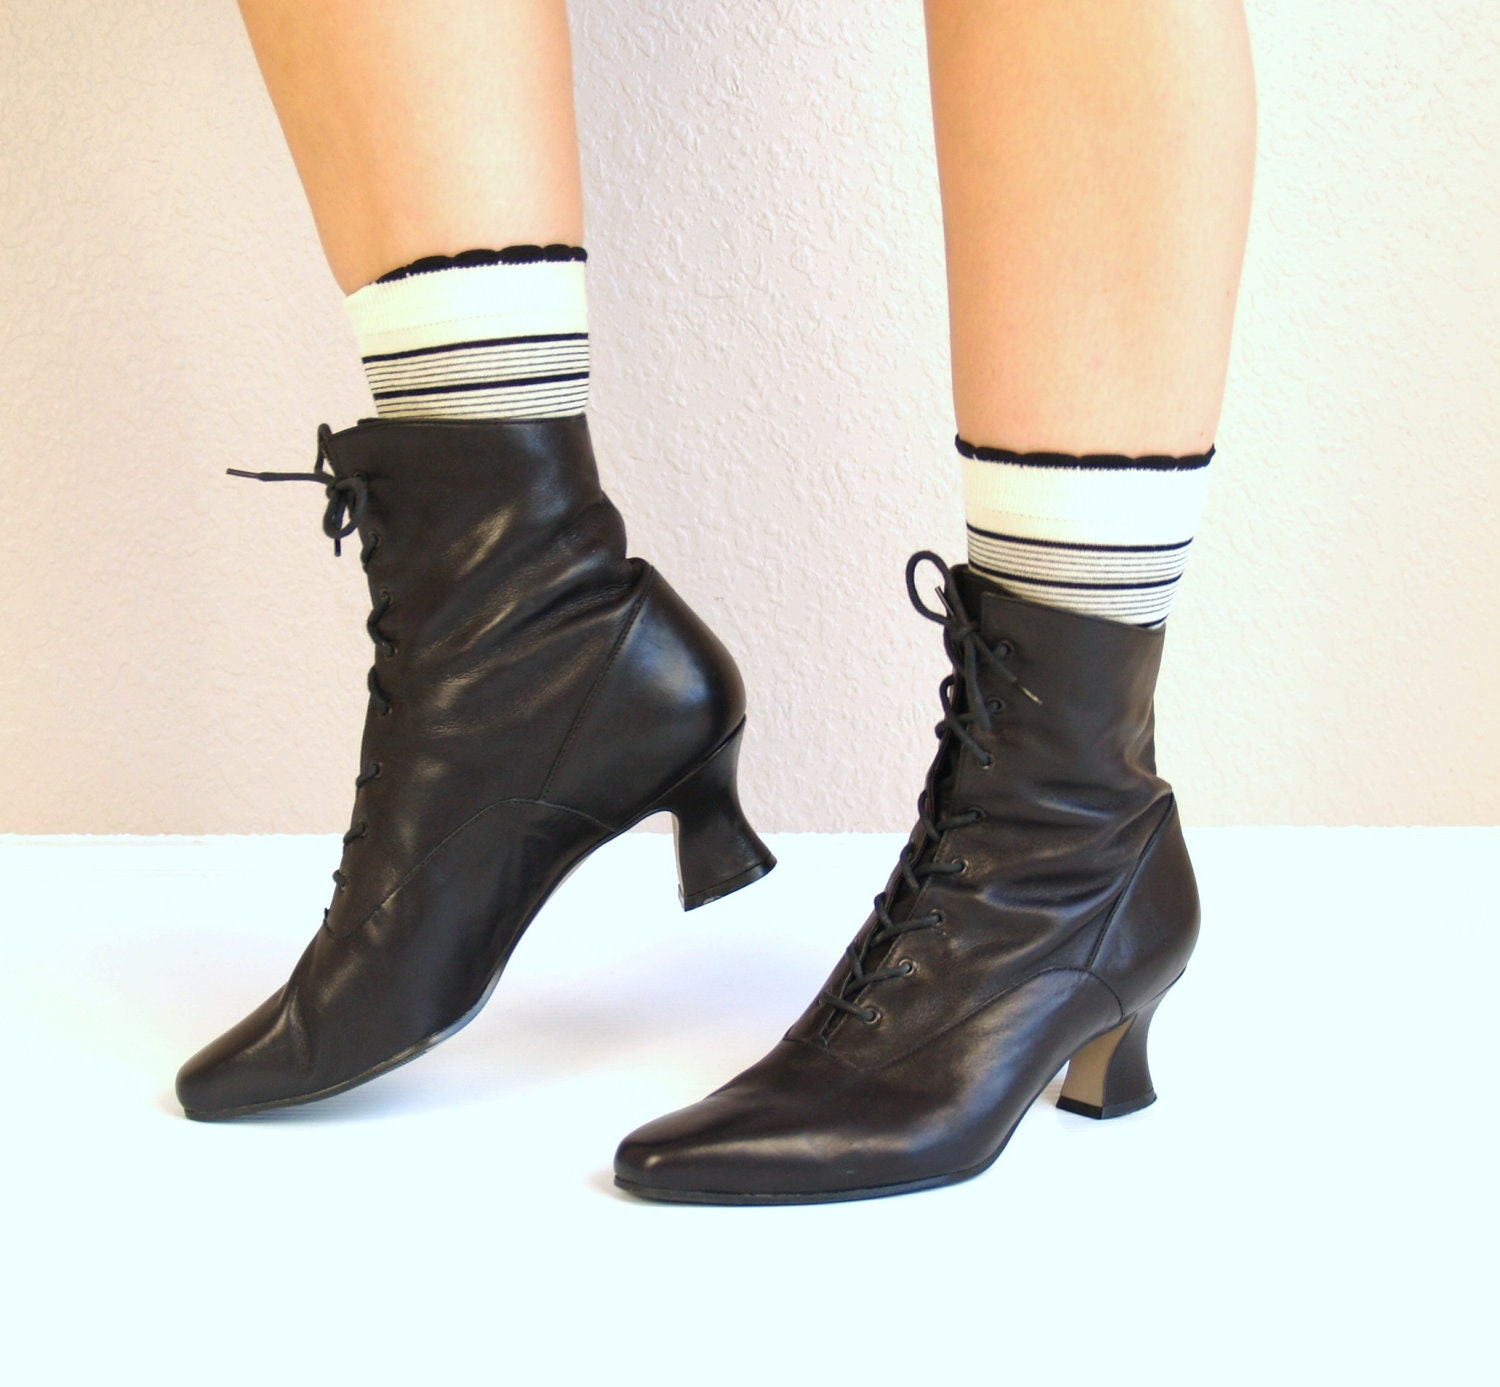 Vtg 80s Black Leather Victorian Lace Up Ankle Boots Granny